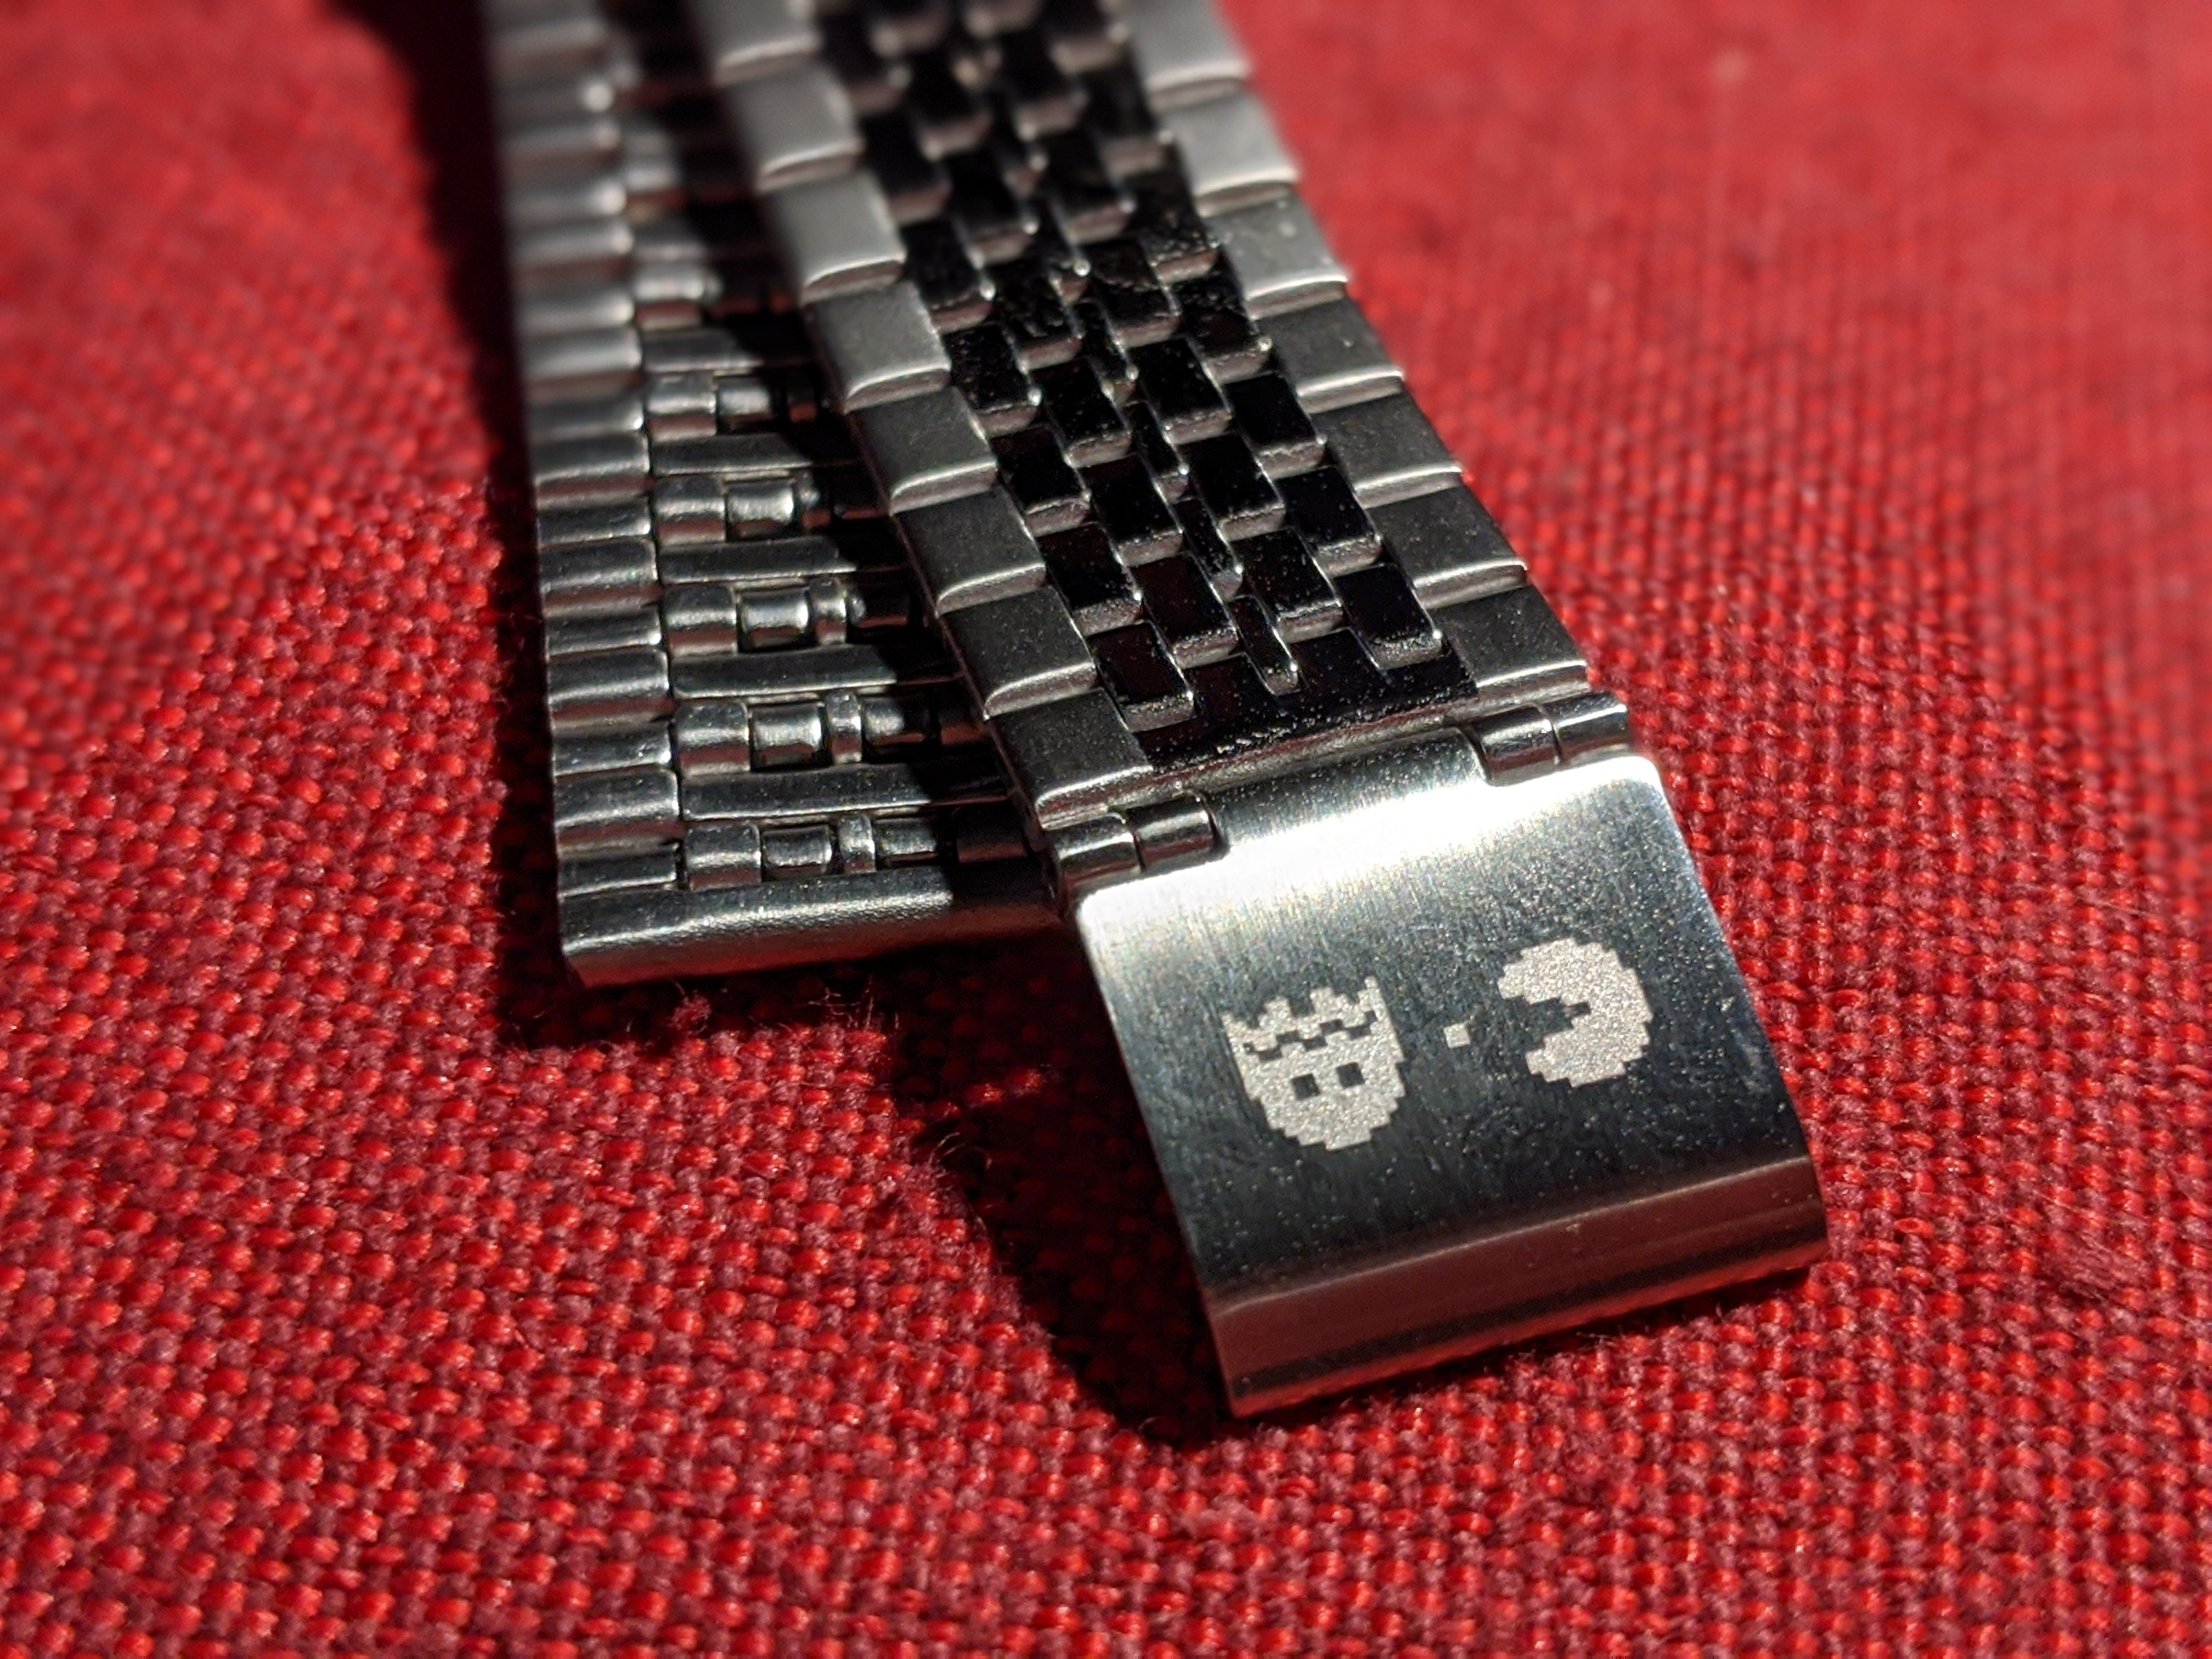 You also get one of the little ghosts, a bit of a video wafer and Pac-Man etched onto the clasp of the watch and on the back of the watch.